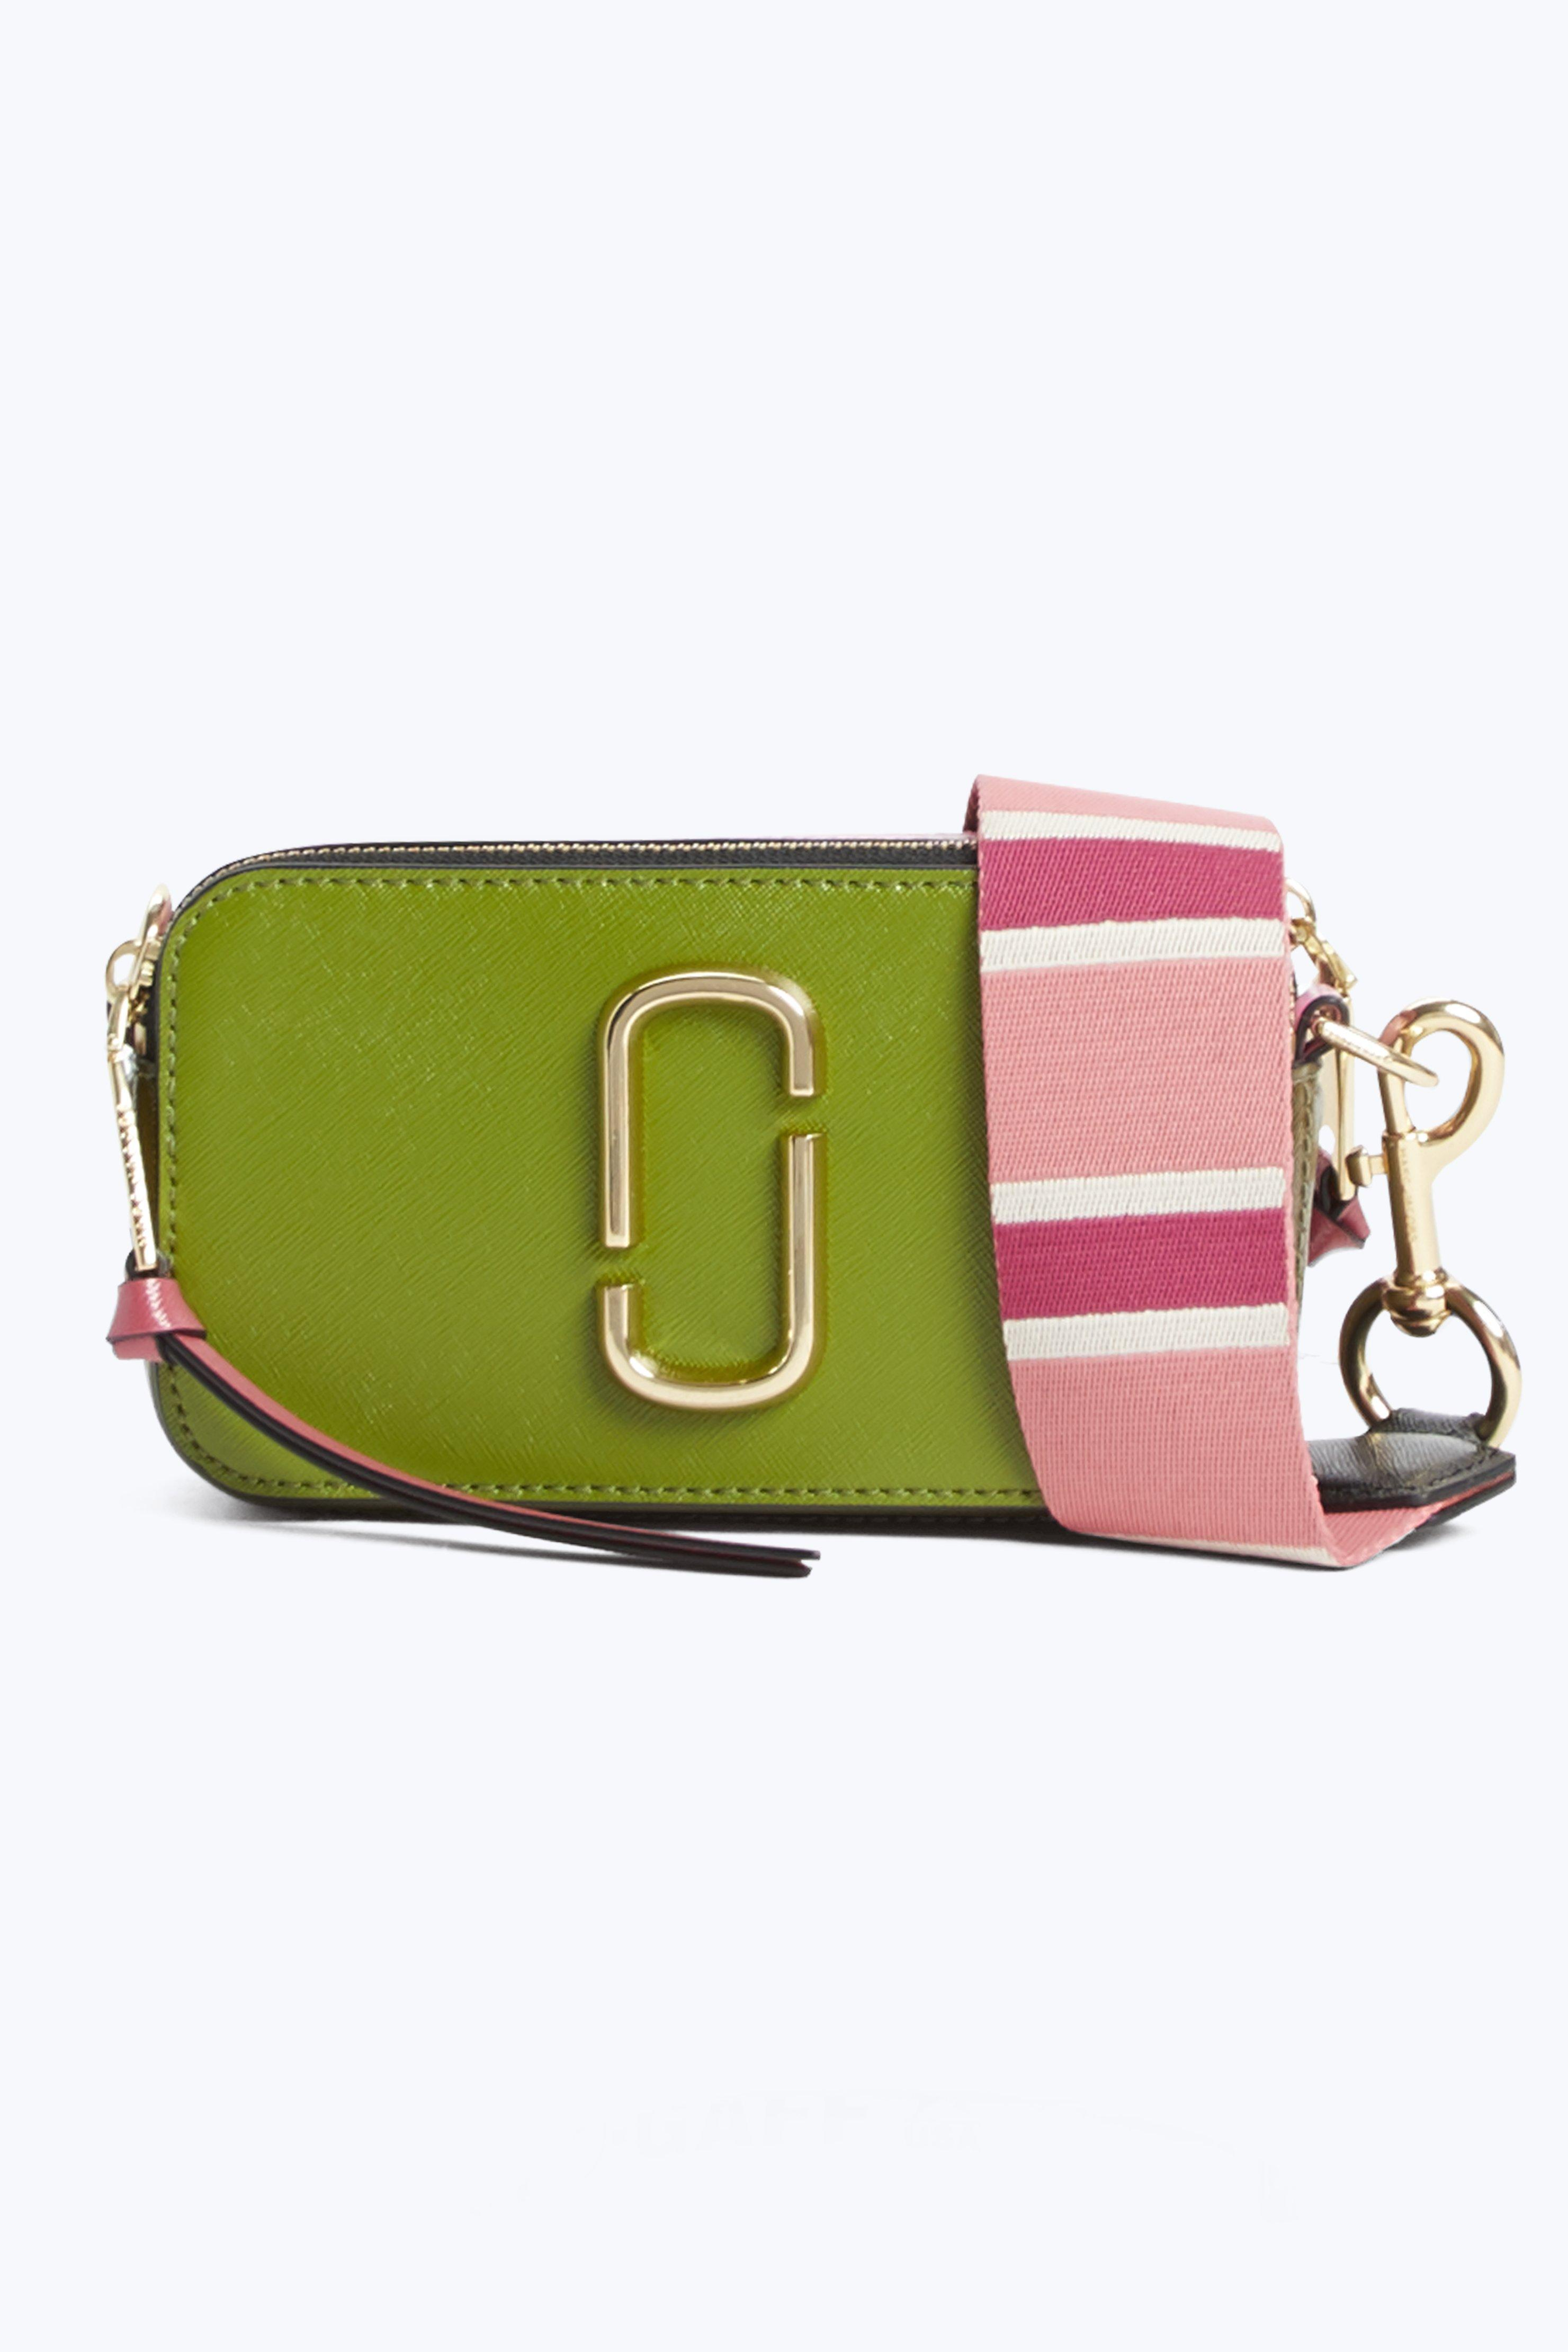 36283d4ba922 Gallery. Previously sold at  Marc Jacobs · Women s Camera Bags